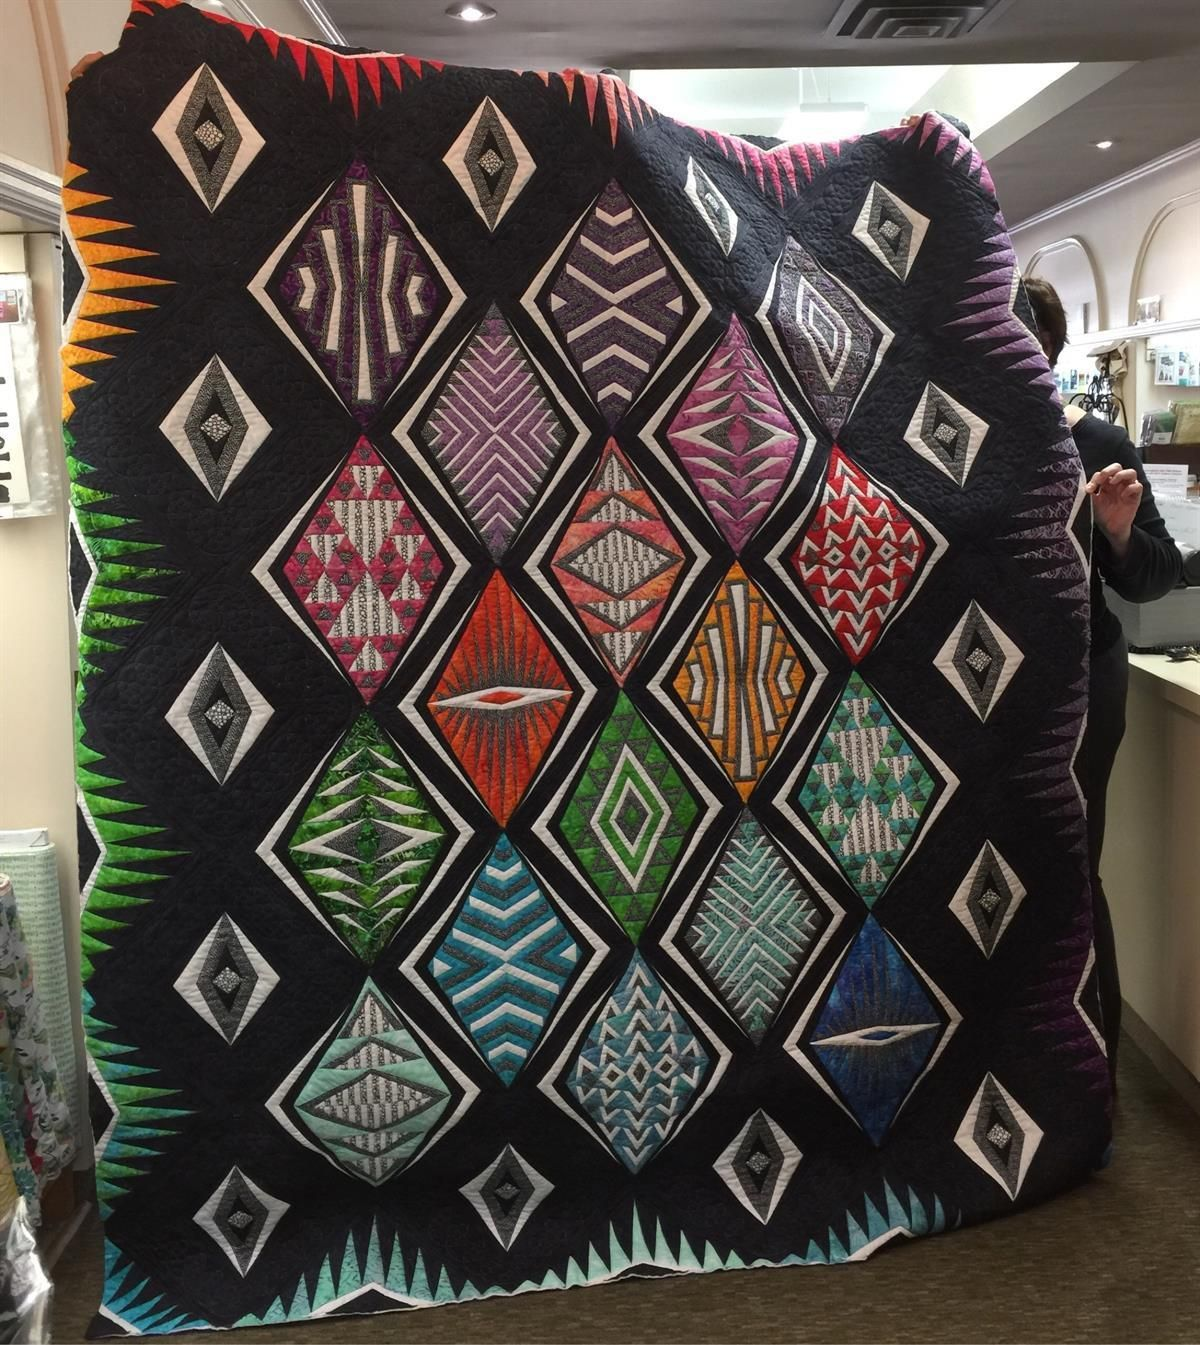 Fabulous Paper Pieced Quilt for Intermediate & Experienced Paper Piecers Contact Cherished Pieces if you are interested in the Class 519.842.2658 Sample Shown quilted by Karen Calver Currently in our Shop Window